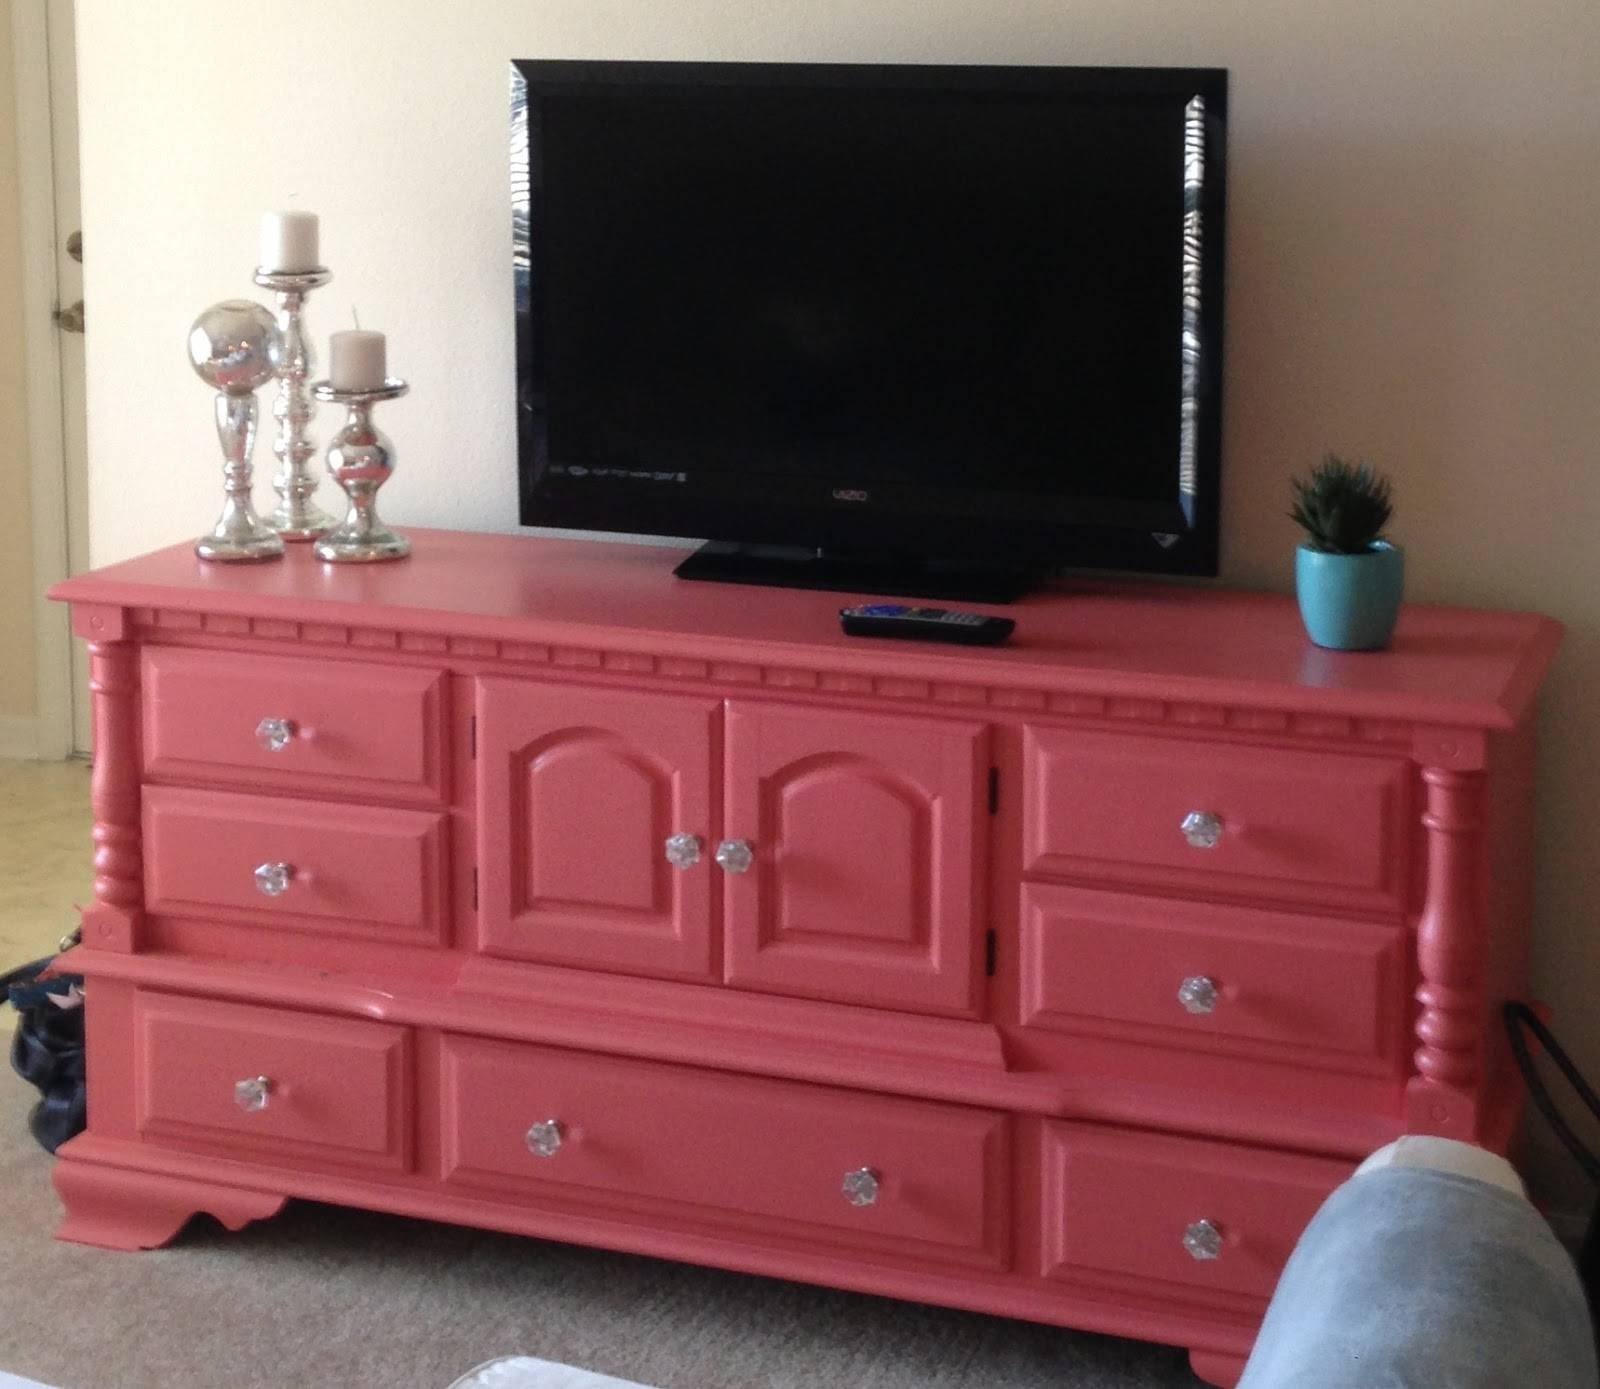 Reclaiming The Empty Nest: Reclaiming The Used Dresser Into A Tv Stand Throughout Dresser And Tv Stands Combination (View 5 of 15)